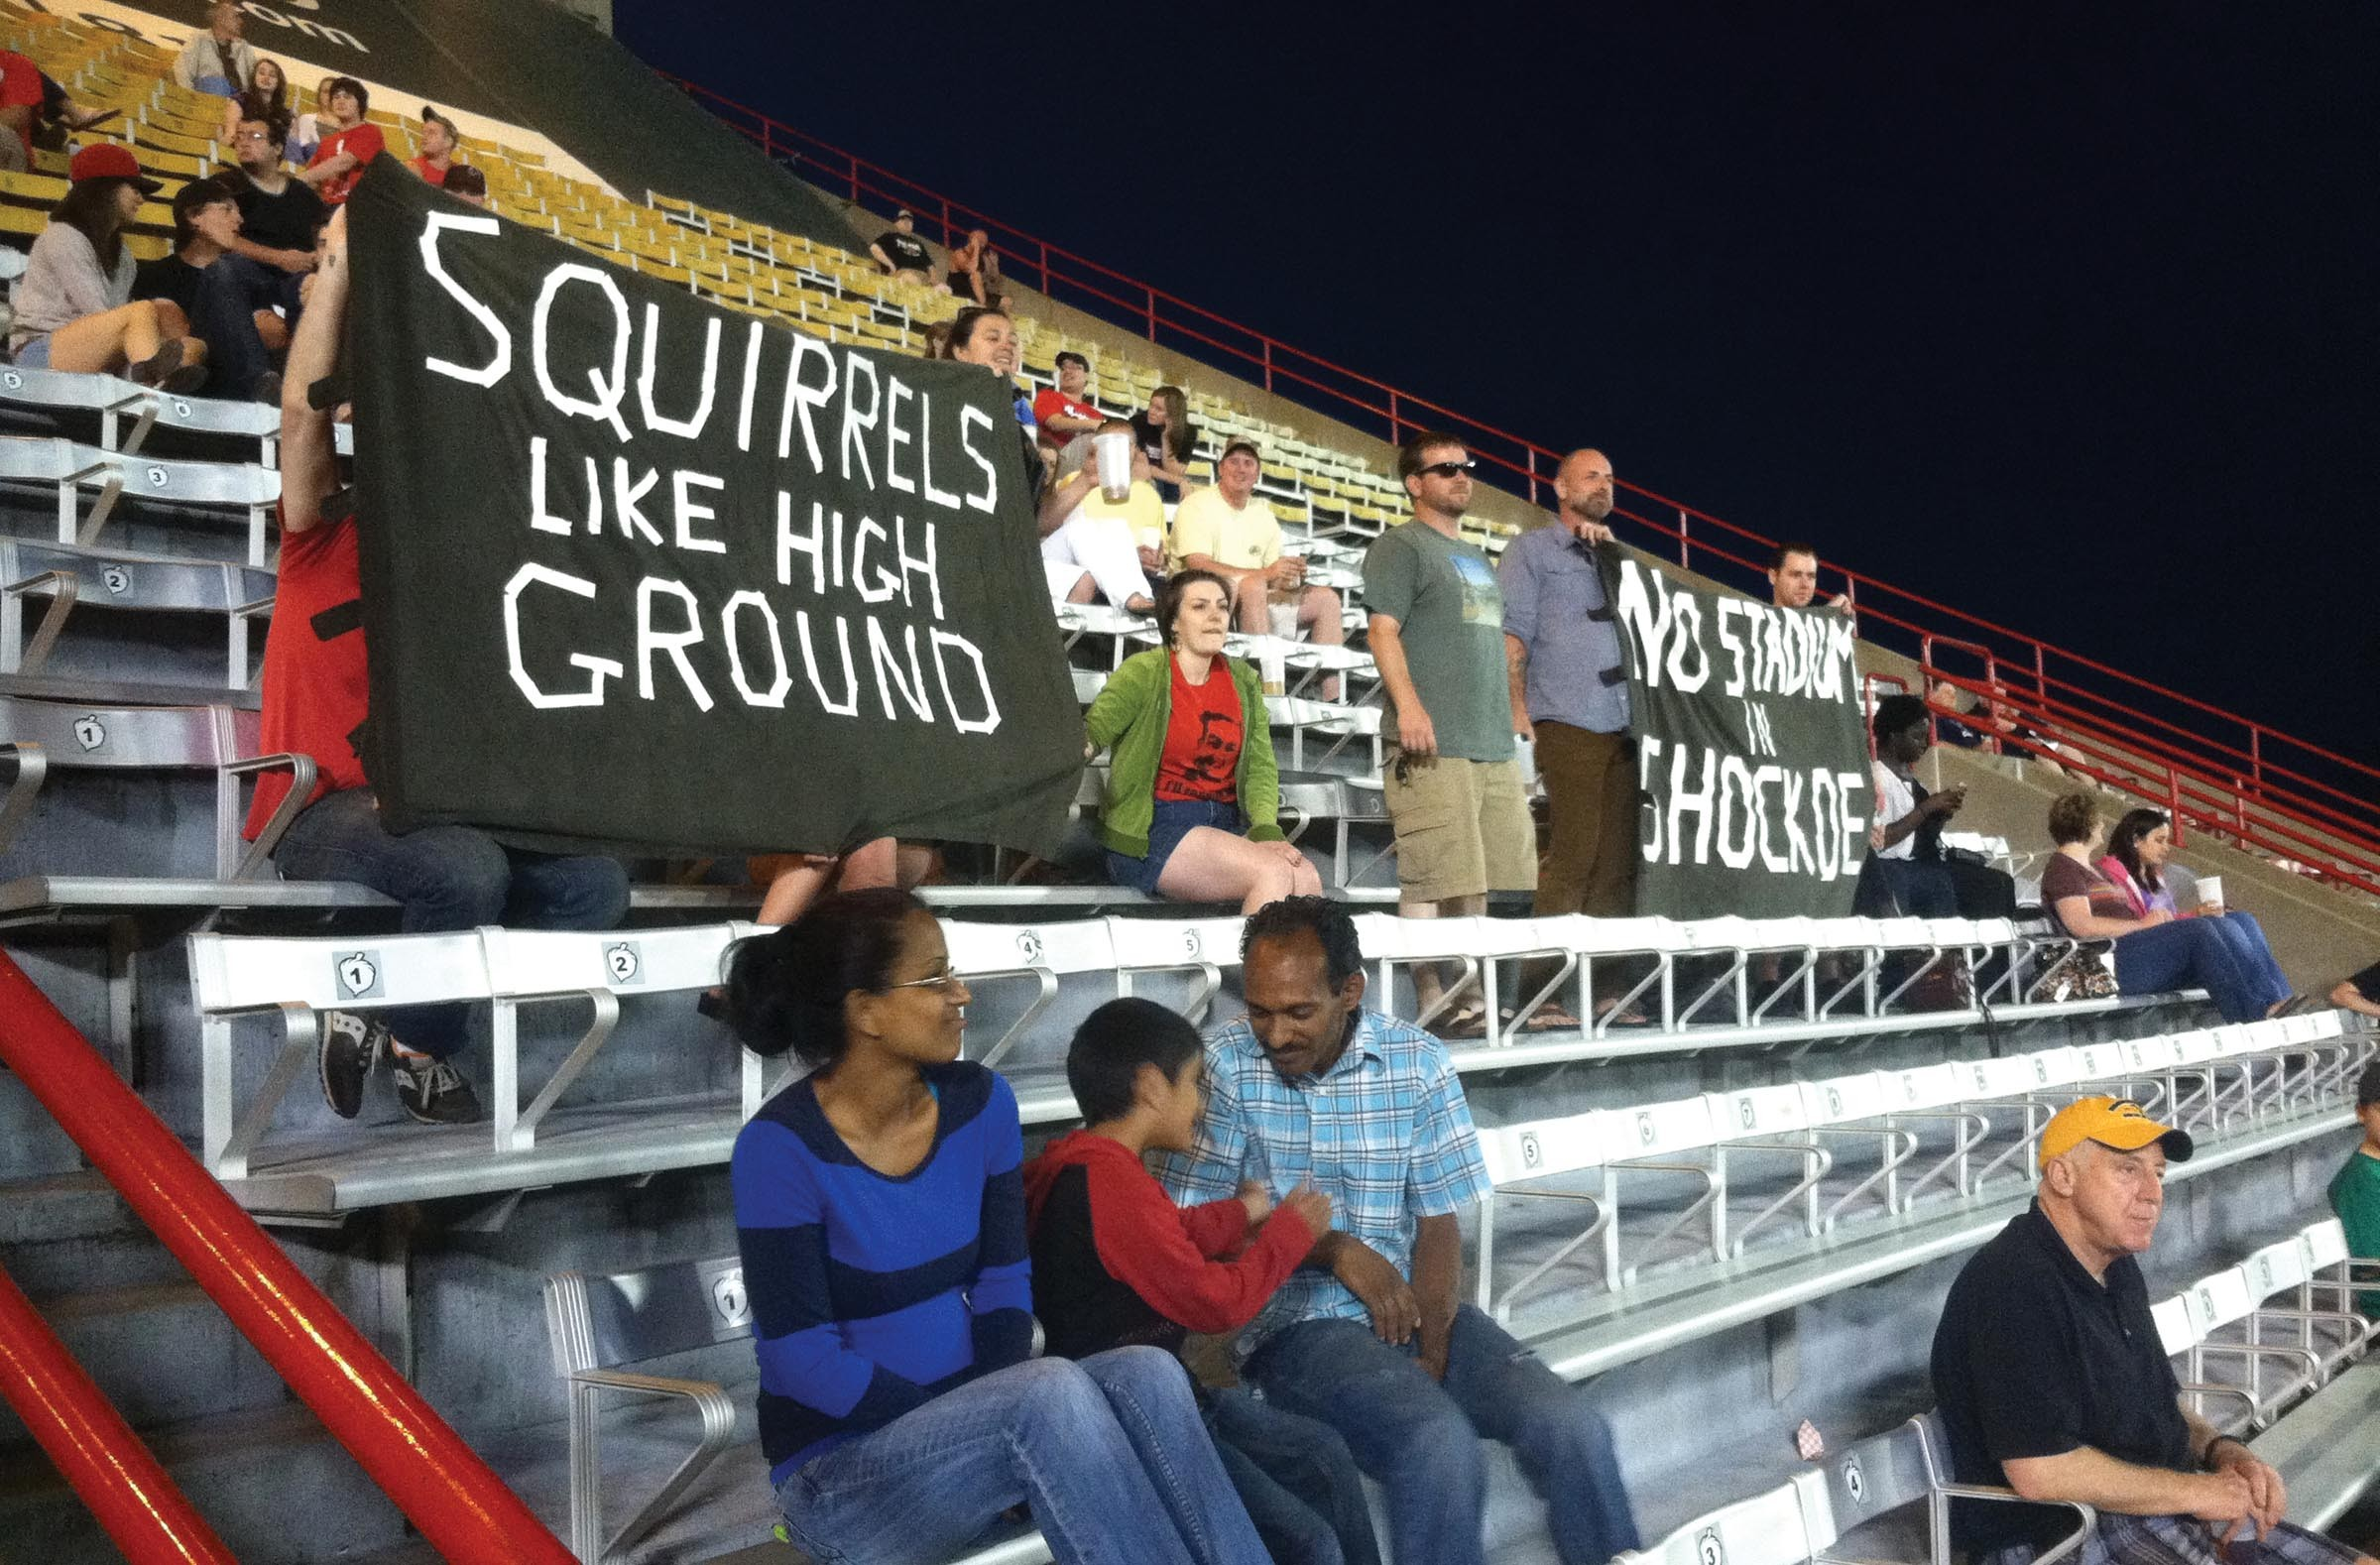 During baseball season, Richmond Flying Squirrels games at The Diamond were targeted by protesters who oppose any plan to move the team to Shockoe Bottom. - NED OLIVER